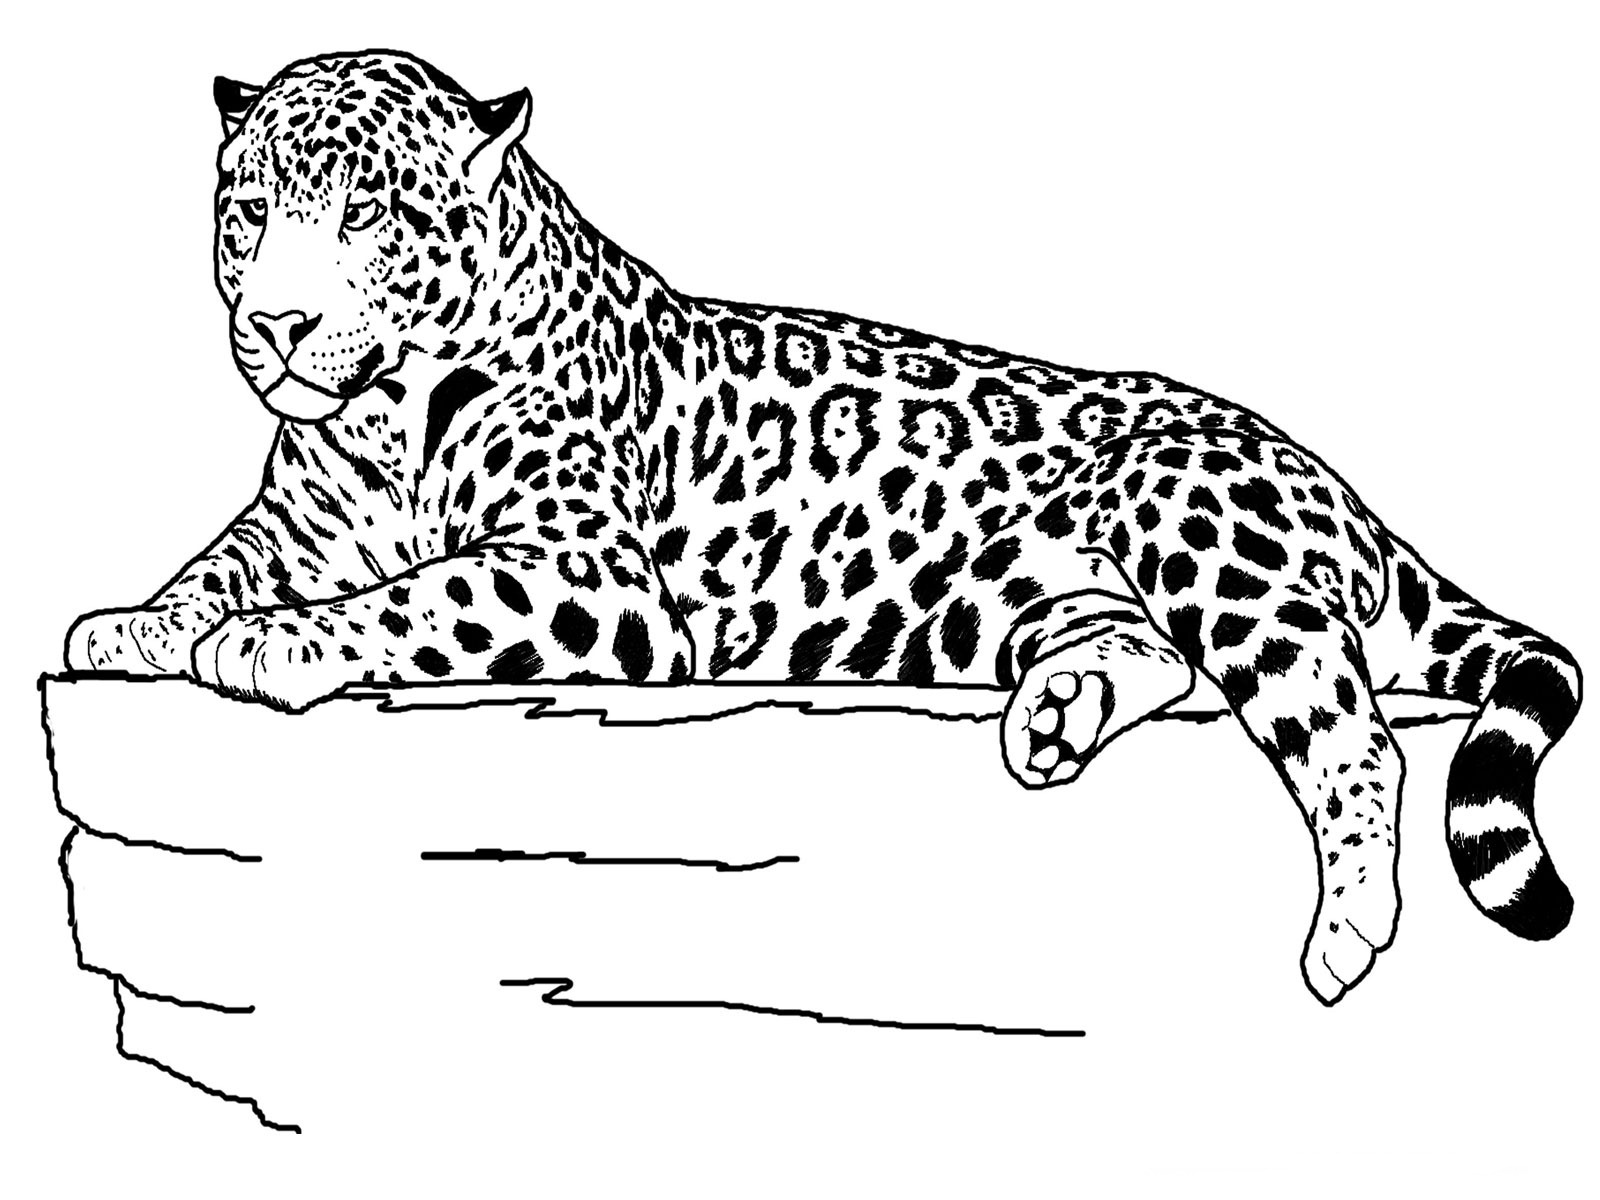 coloring pages jaguars - photo#26